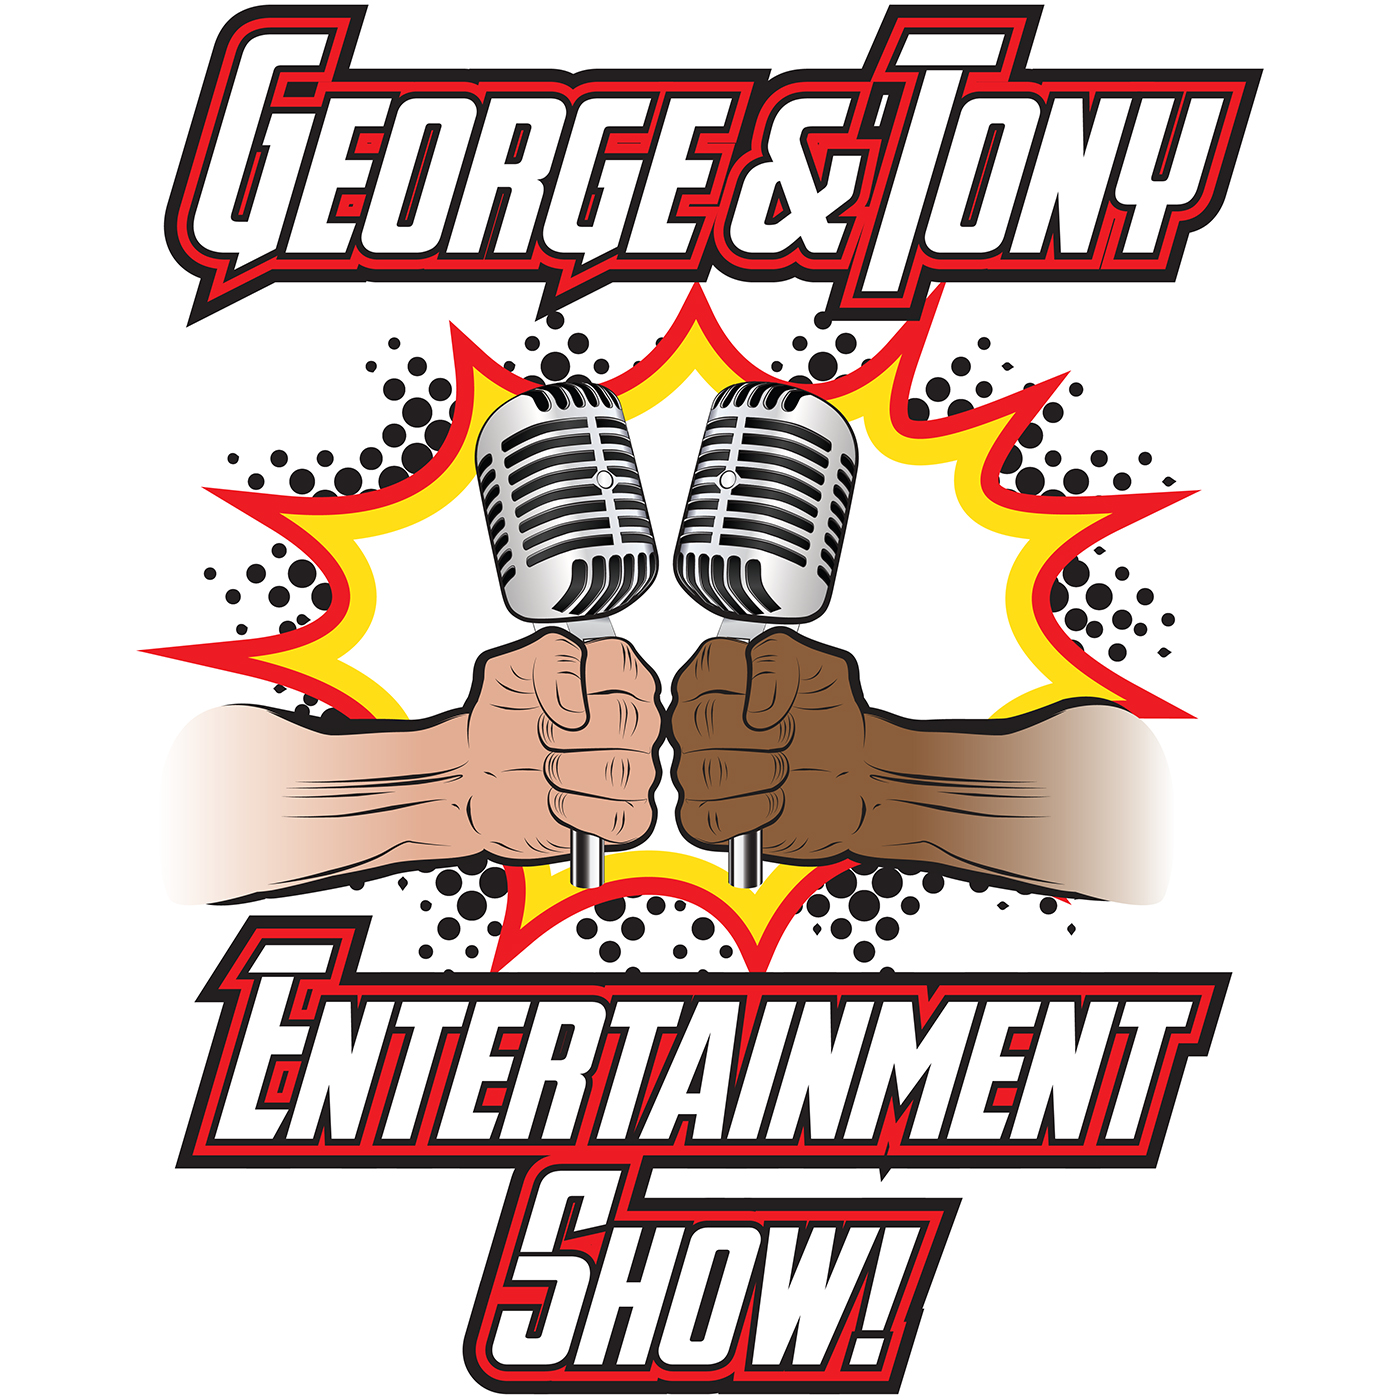 George and Tony Entertainment Show #93